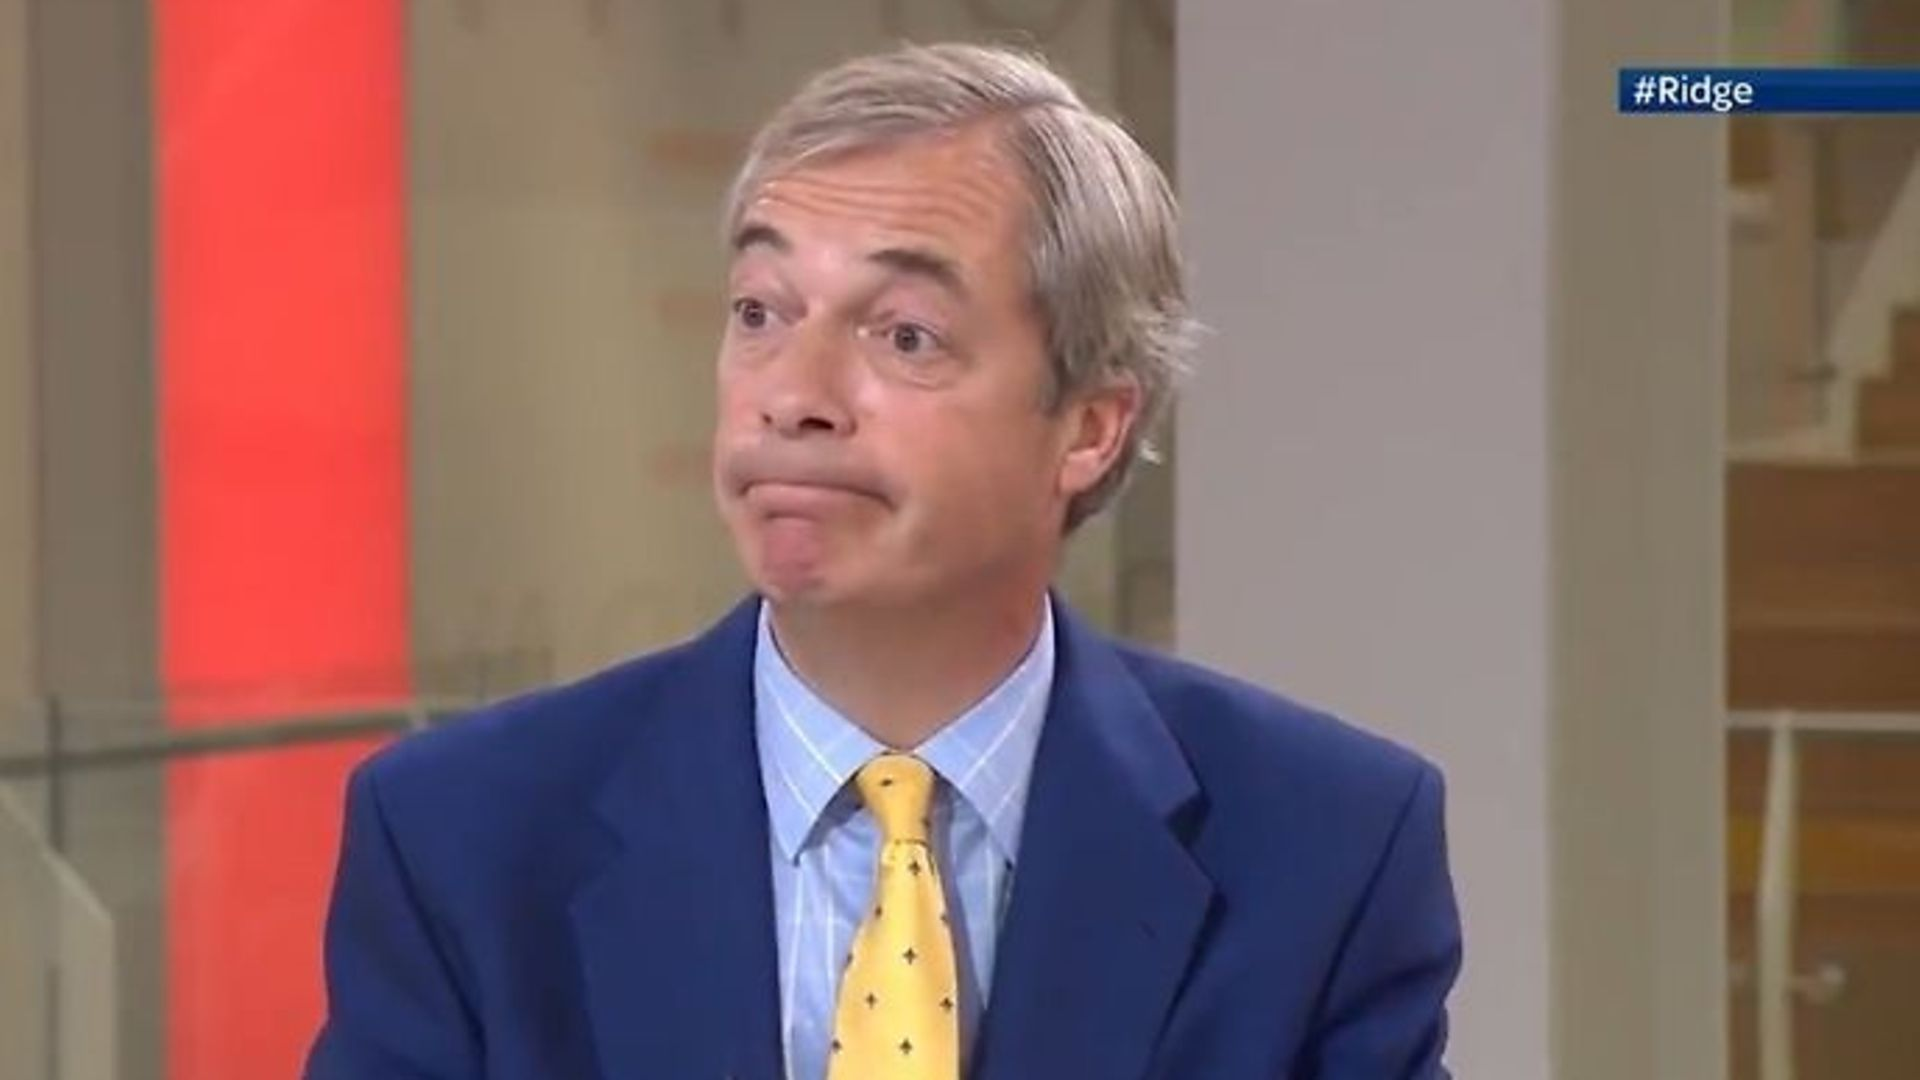 Nigel Farage warned Brexiteers won't be 'satisfied' if Britain continues to be bound to state aid provisions - Credit: Twitter